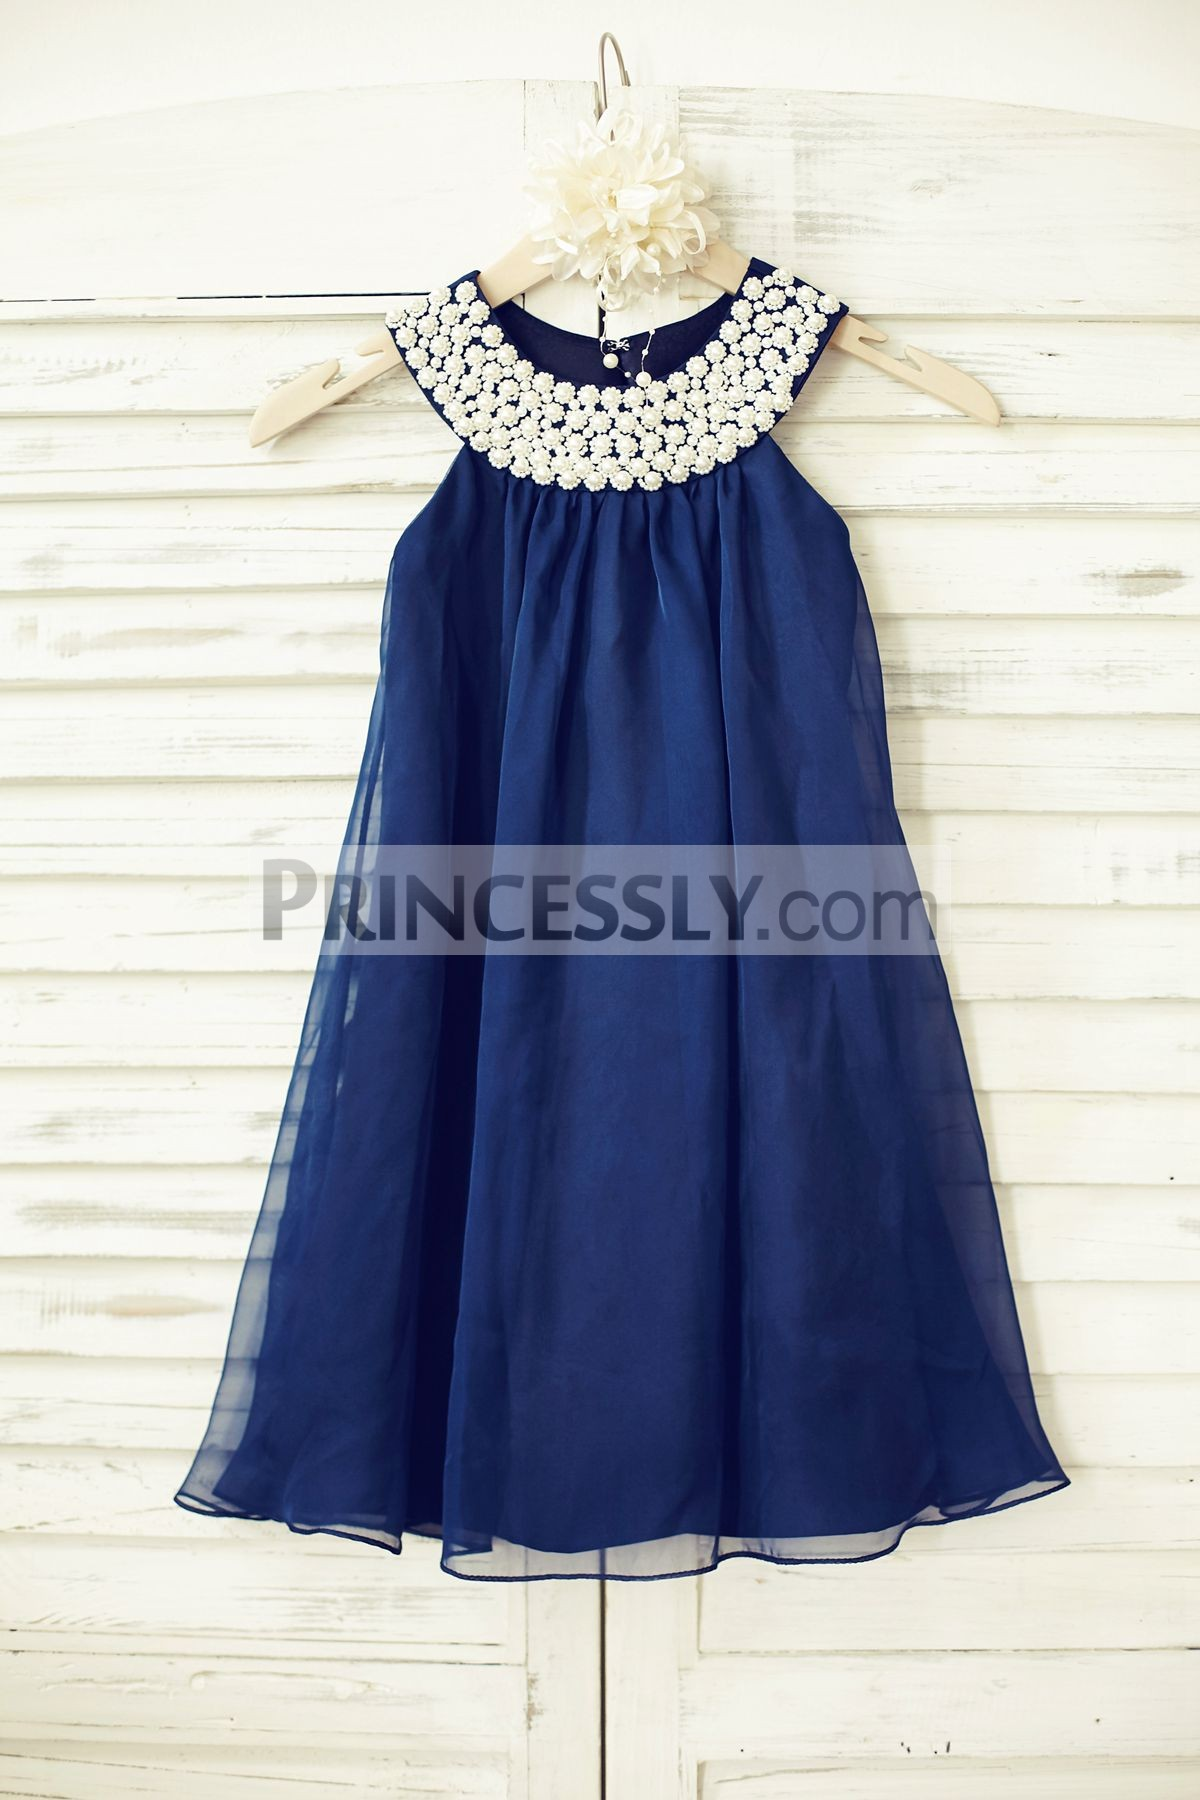 Boho beach beaded pearls navy blue chiffon flower girl dress